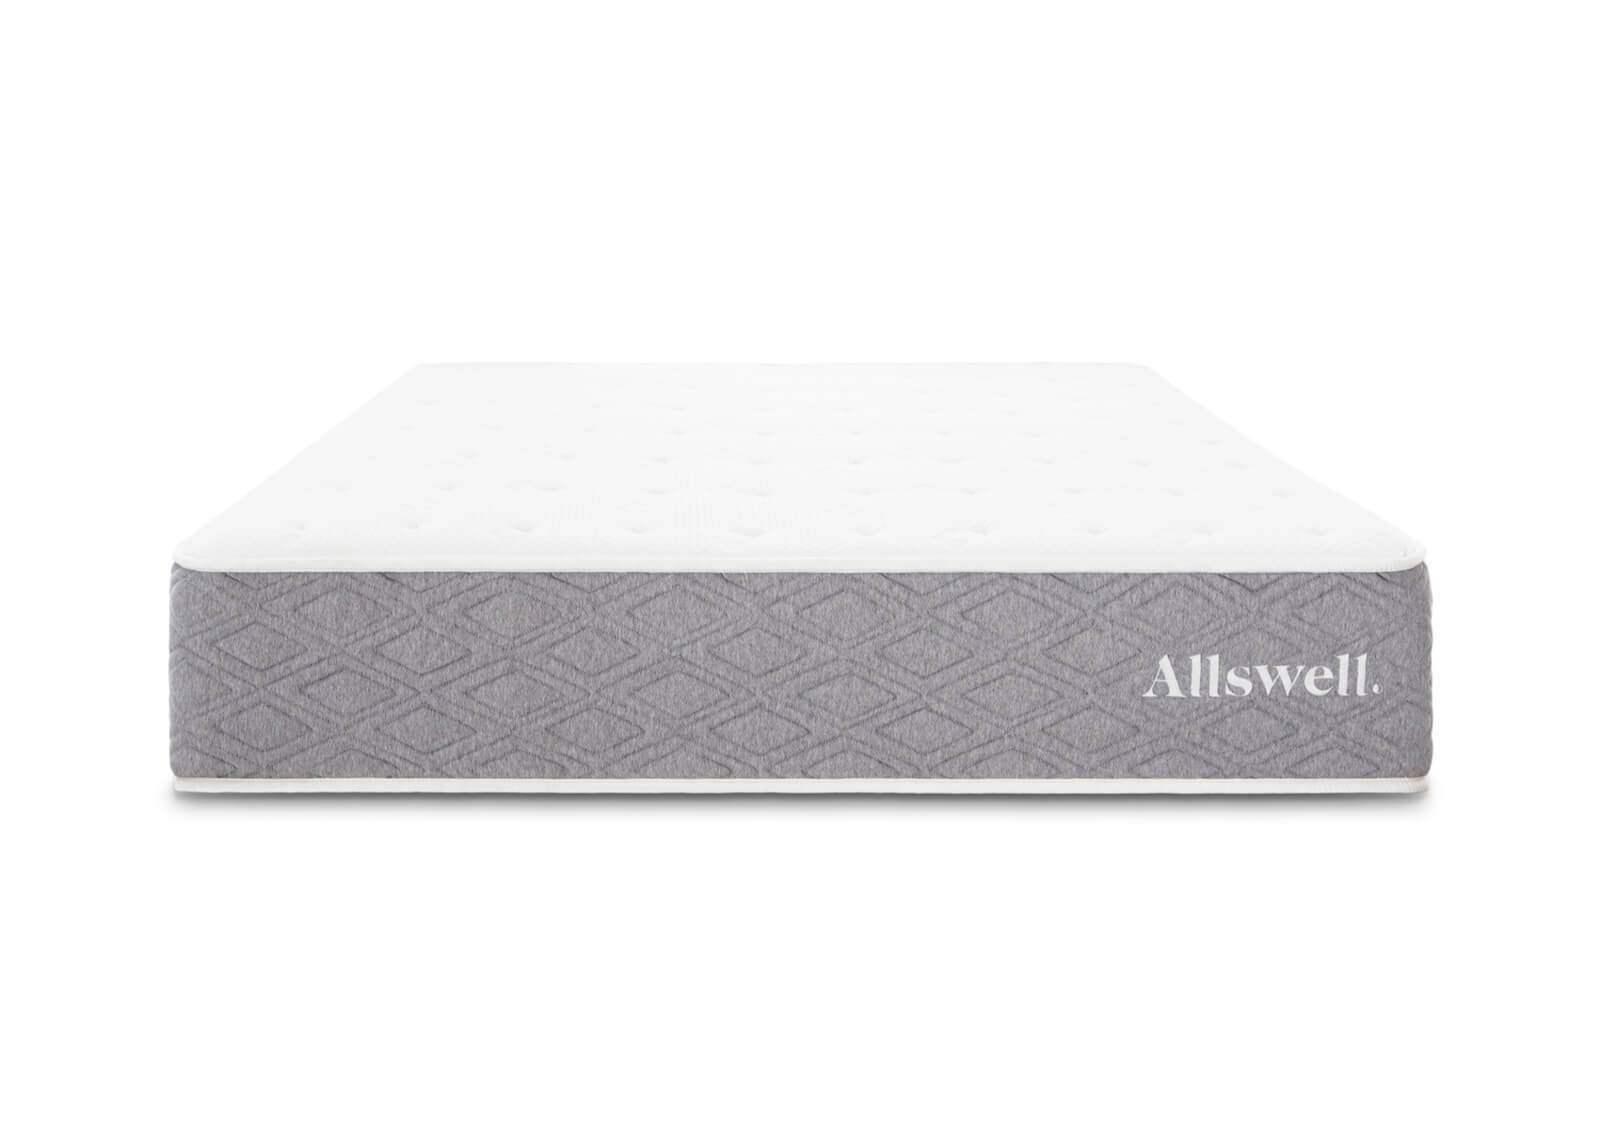 Allswell The Allswell Luxe Hybrid